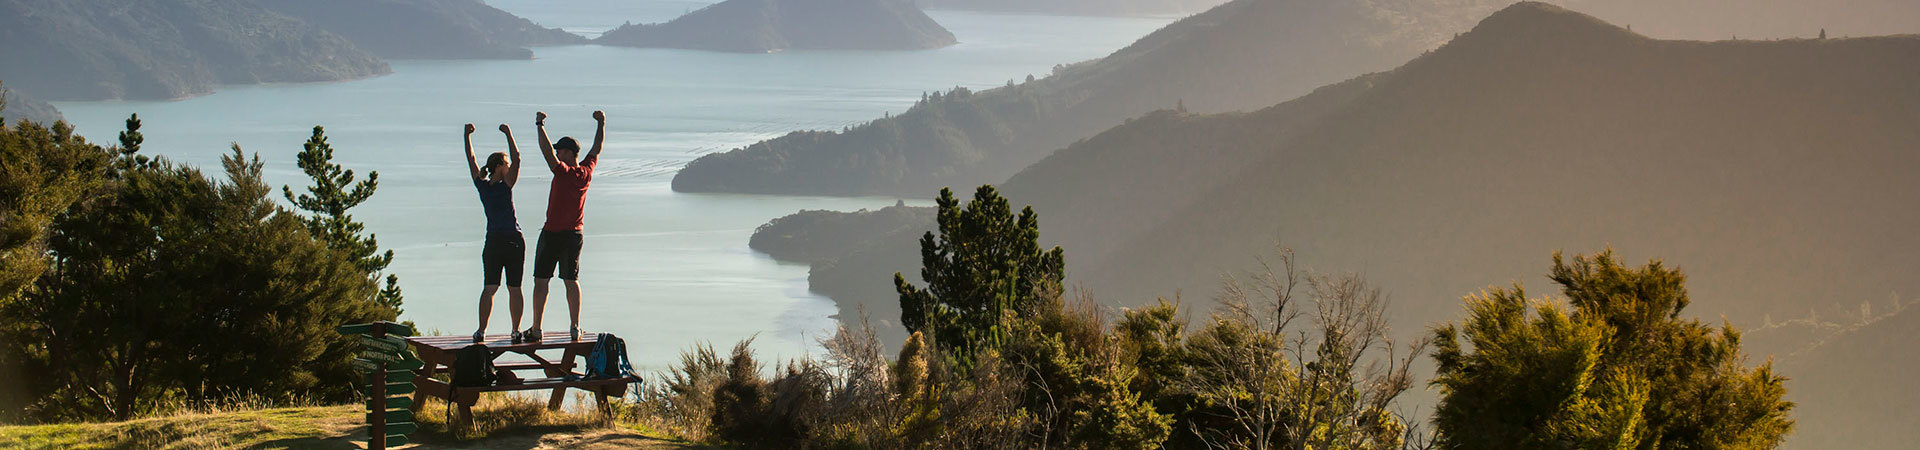 Marlborough Sounds New Zealand South Island